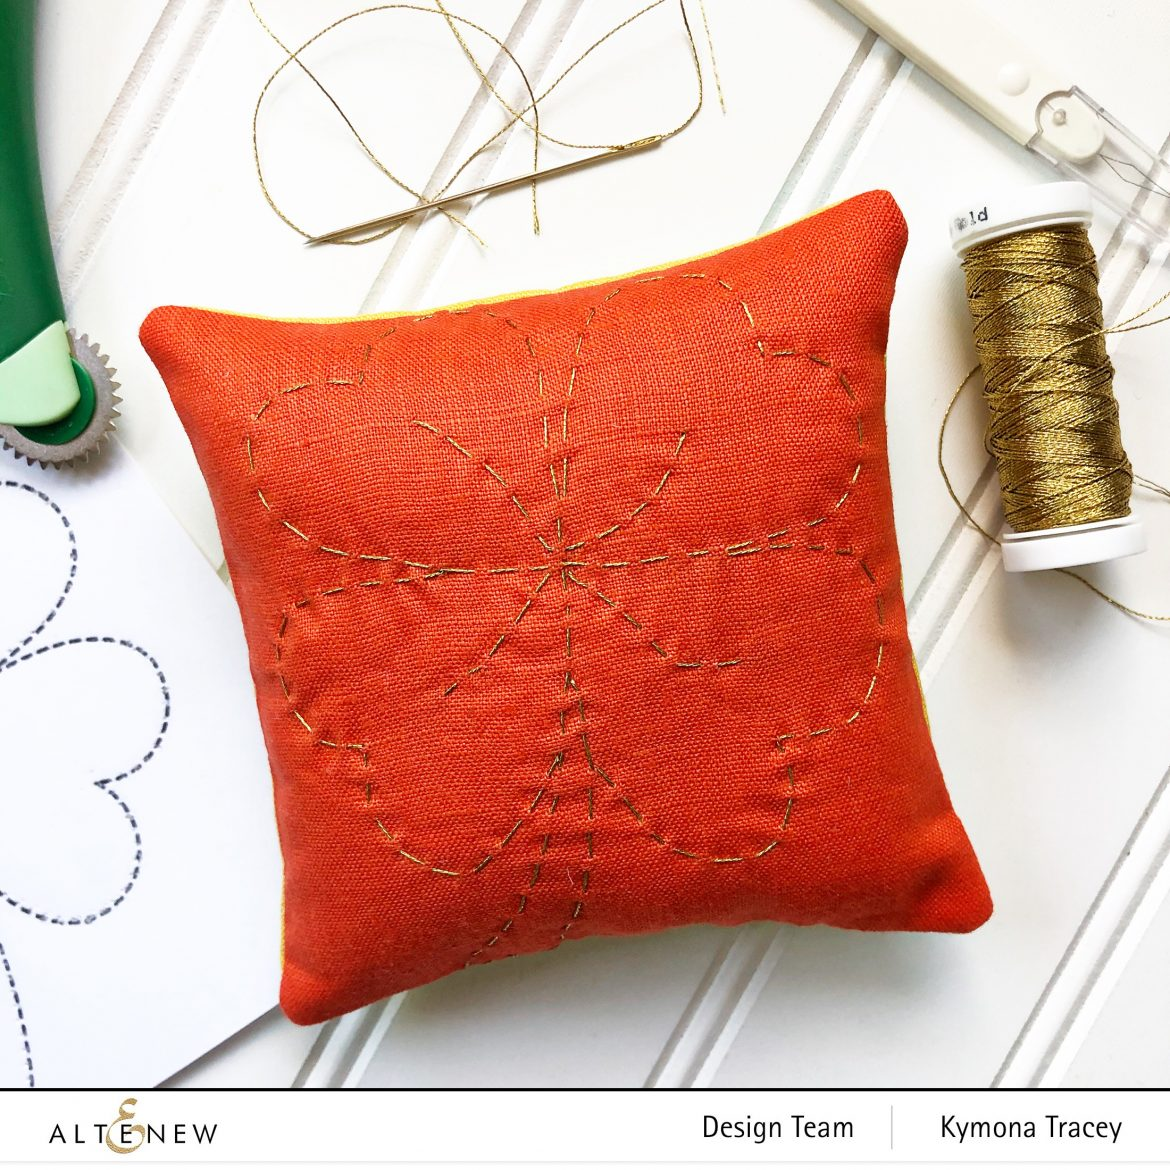 Sewing project using metallic thread - pincushion